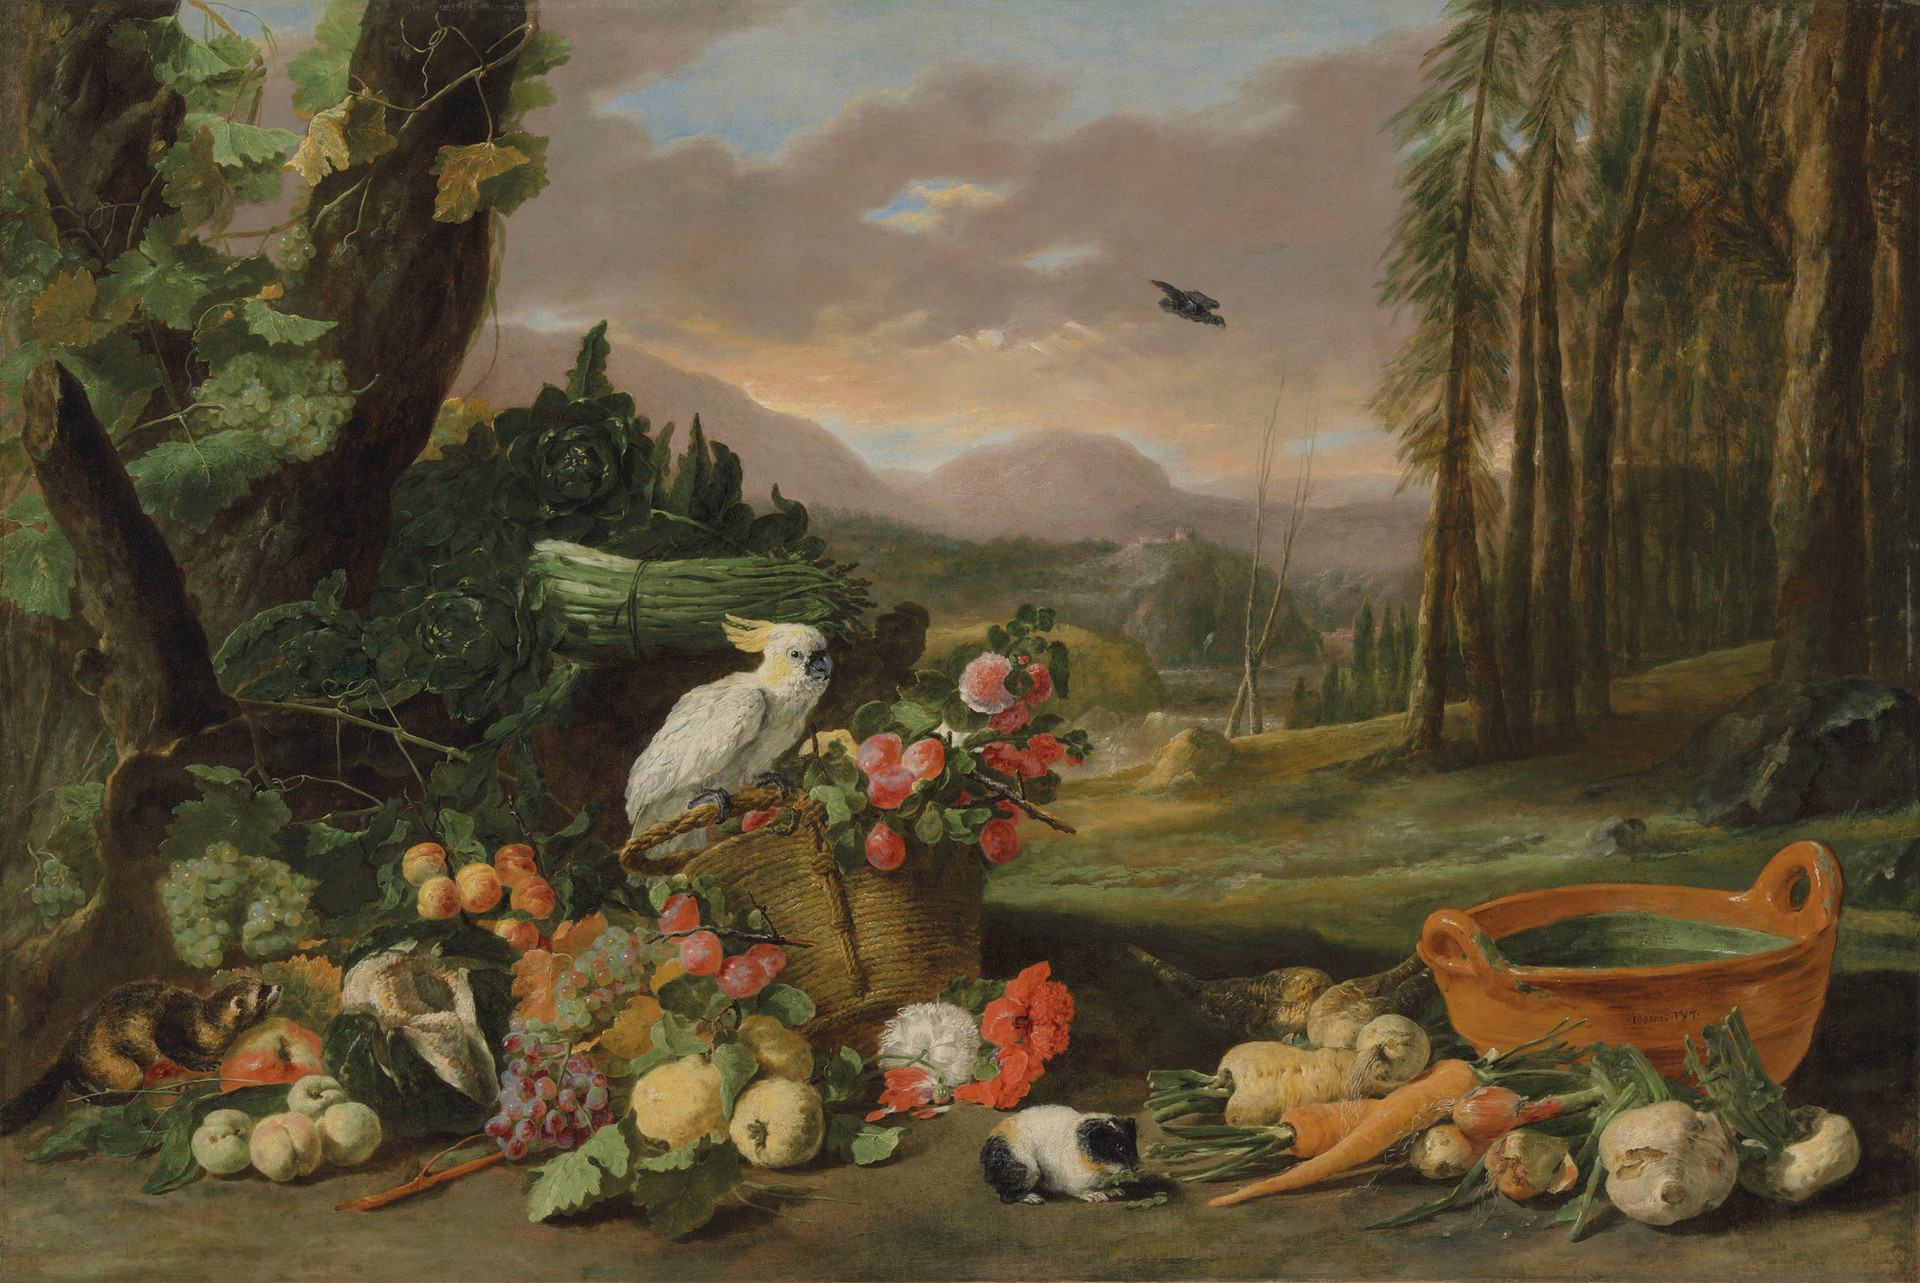 A wooded landscape with a still life of fruit, a guinea pig and a sulphur-crested cockatoo